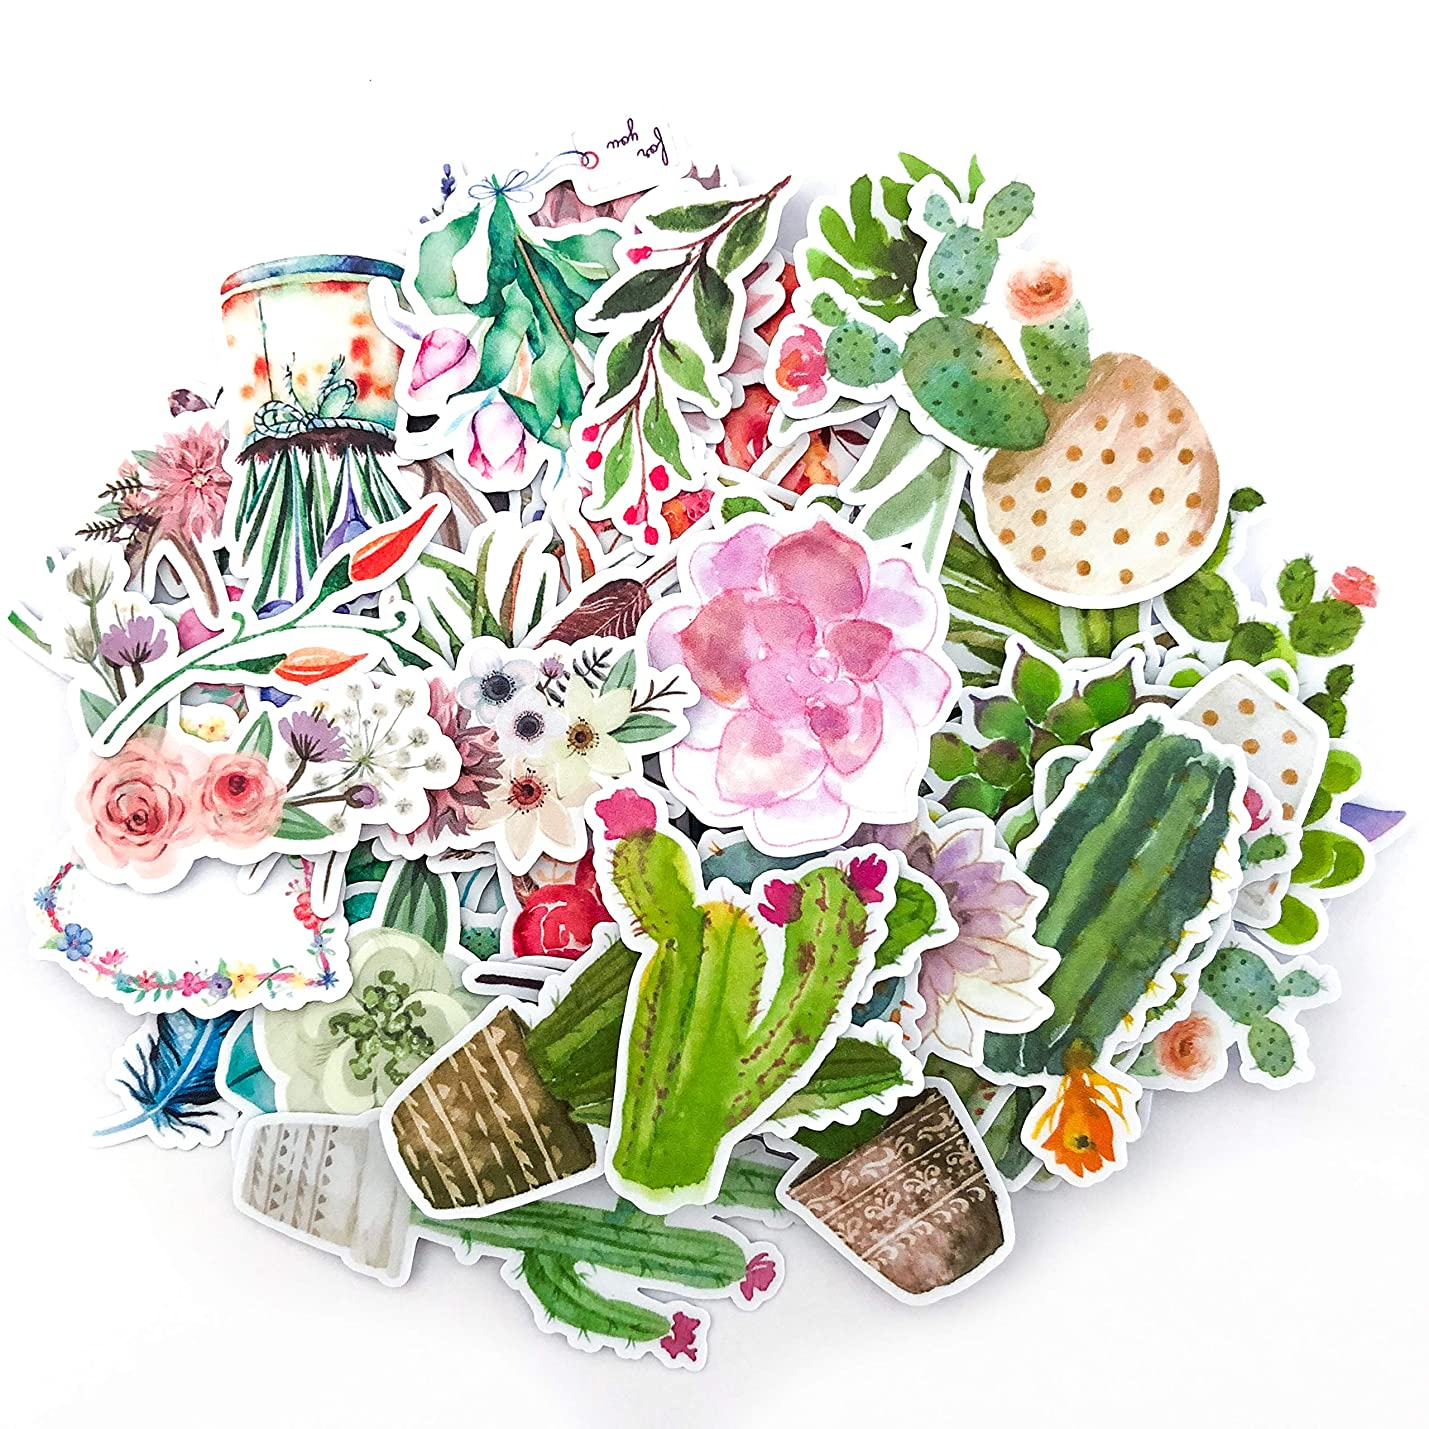 Navy Peony Watercolor Flower,Cactus and Succulent Plants Sticker Pack  Mini Waterproof Decals for Laptops, Water Bottles and Phones  Artsy Floral Stickers for Your Scrapbooking and Bullet Journaling wbqvdlrrifonw327